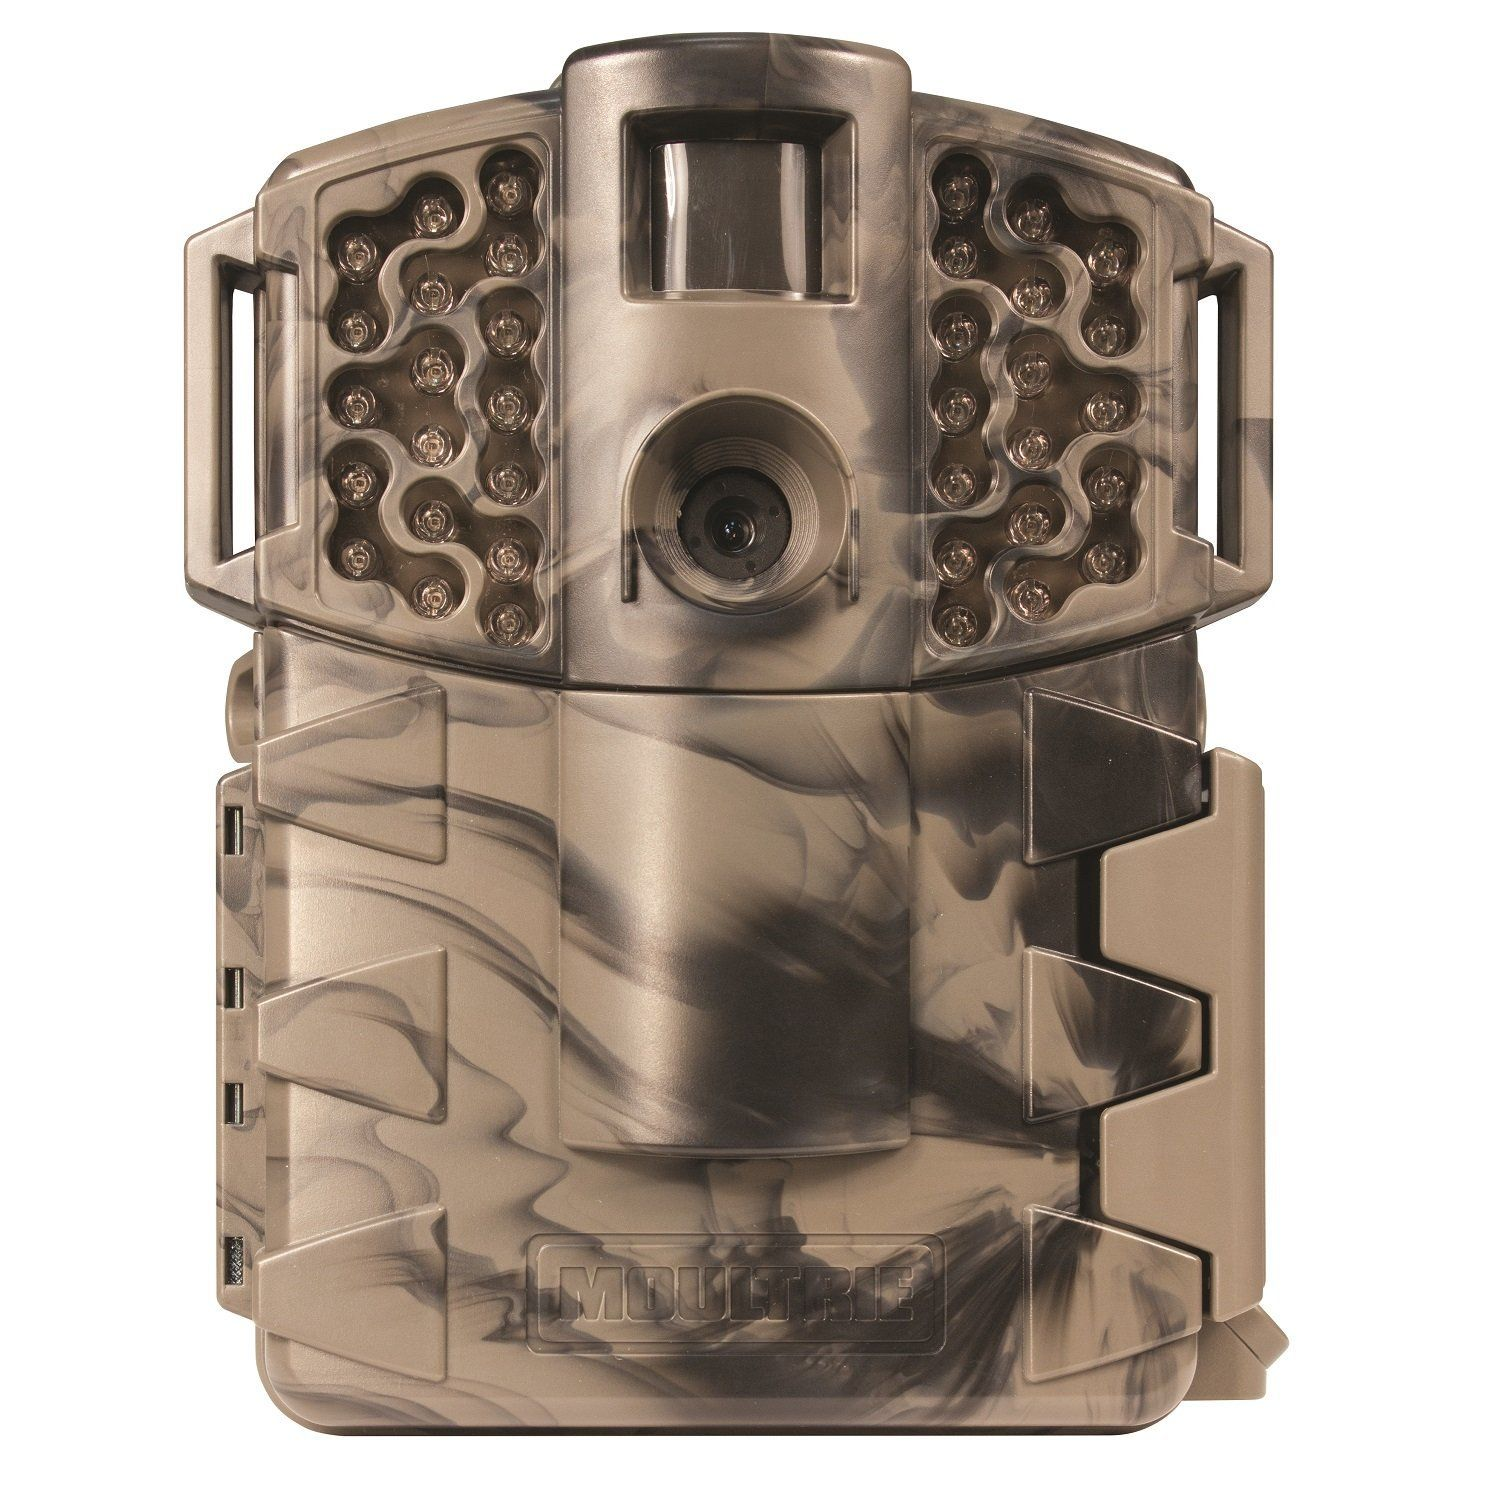 Moultrie A7i Trail Camera It's a joy to download fresh